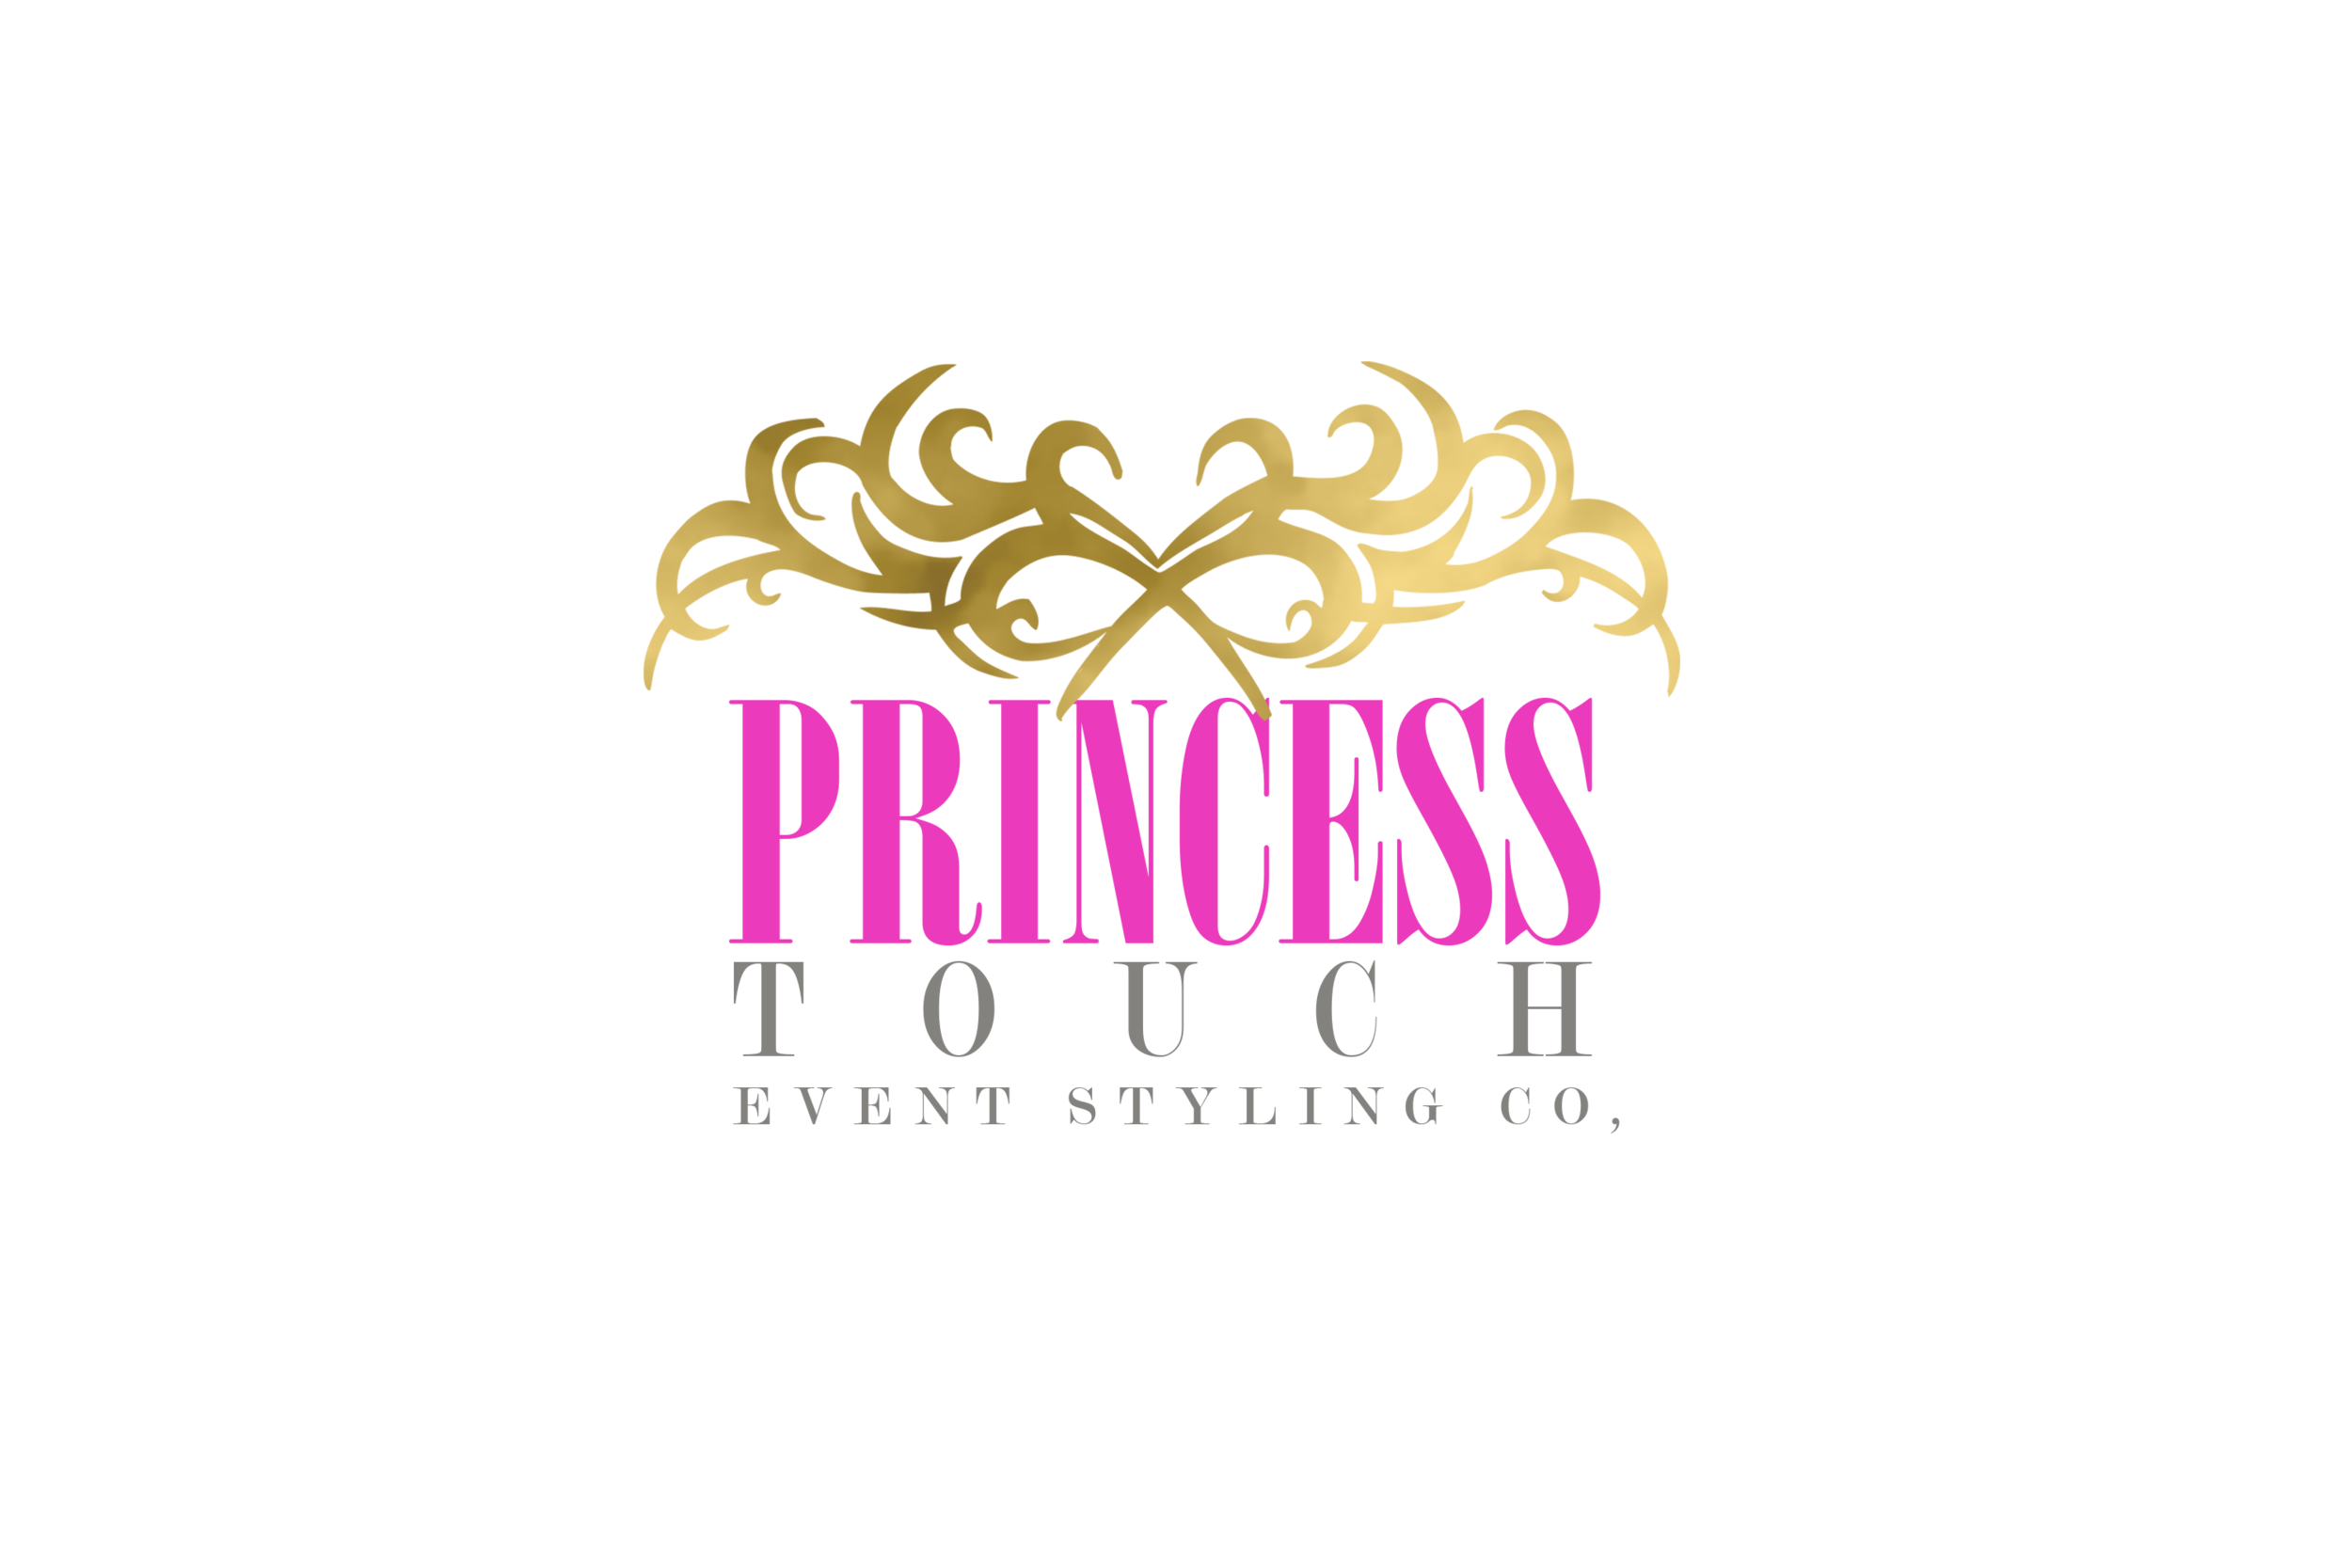 Newprincesslogo.png